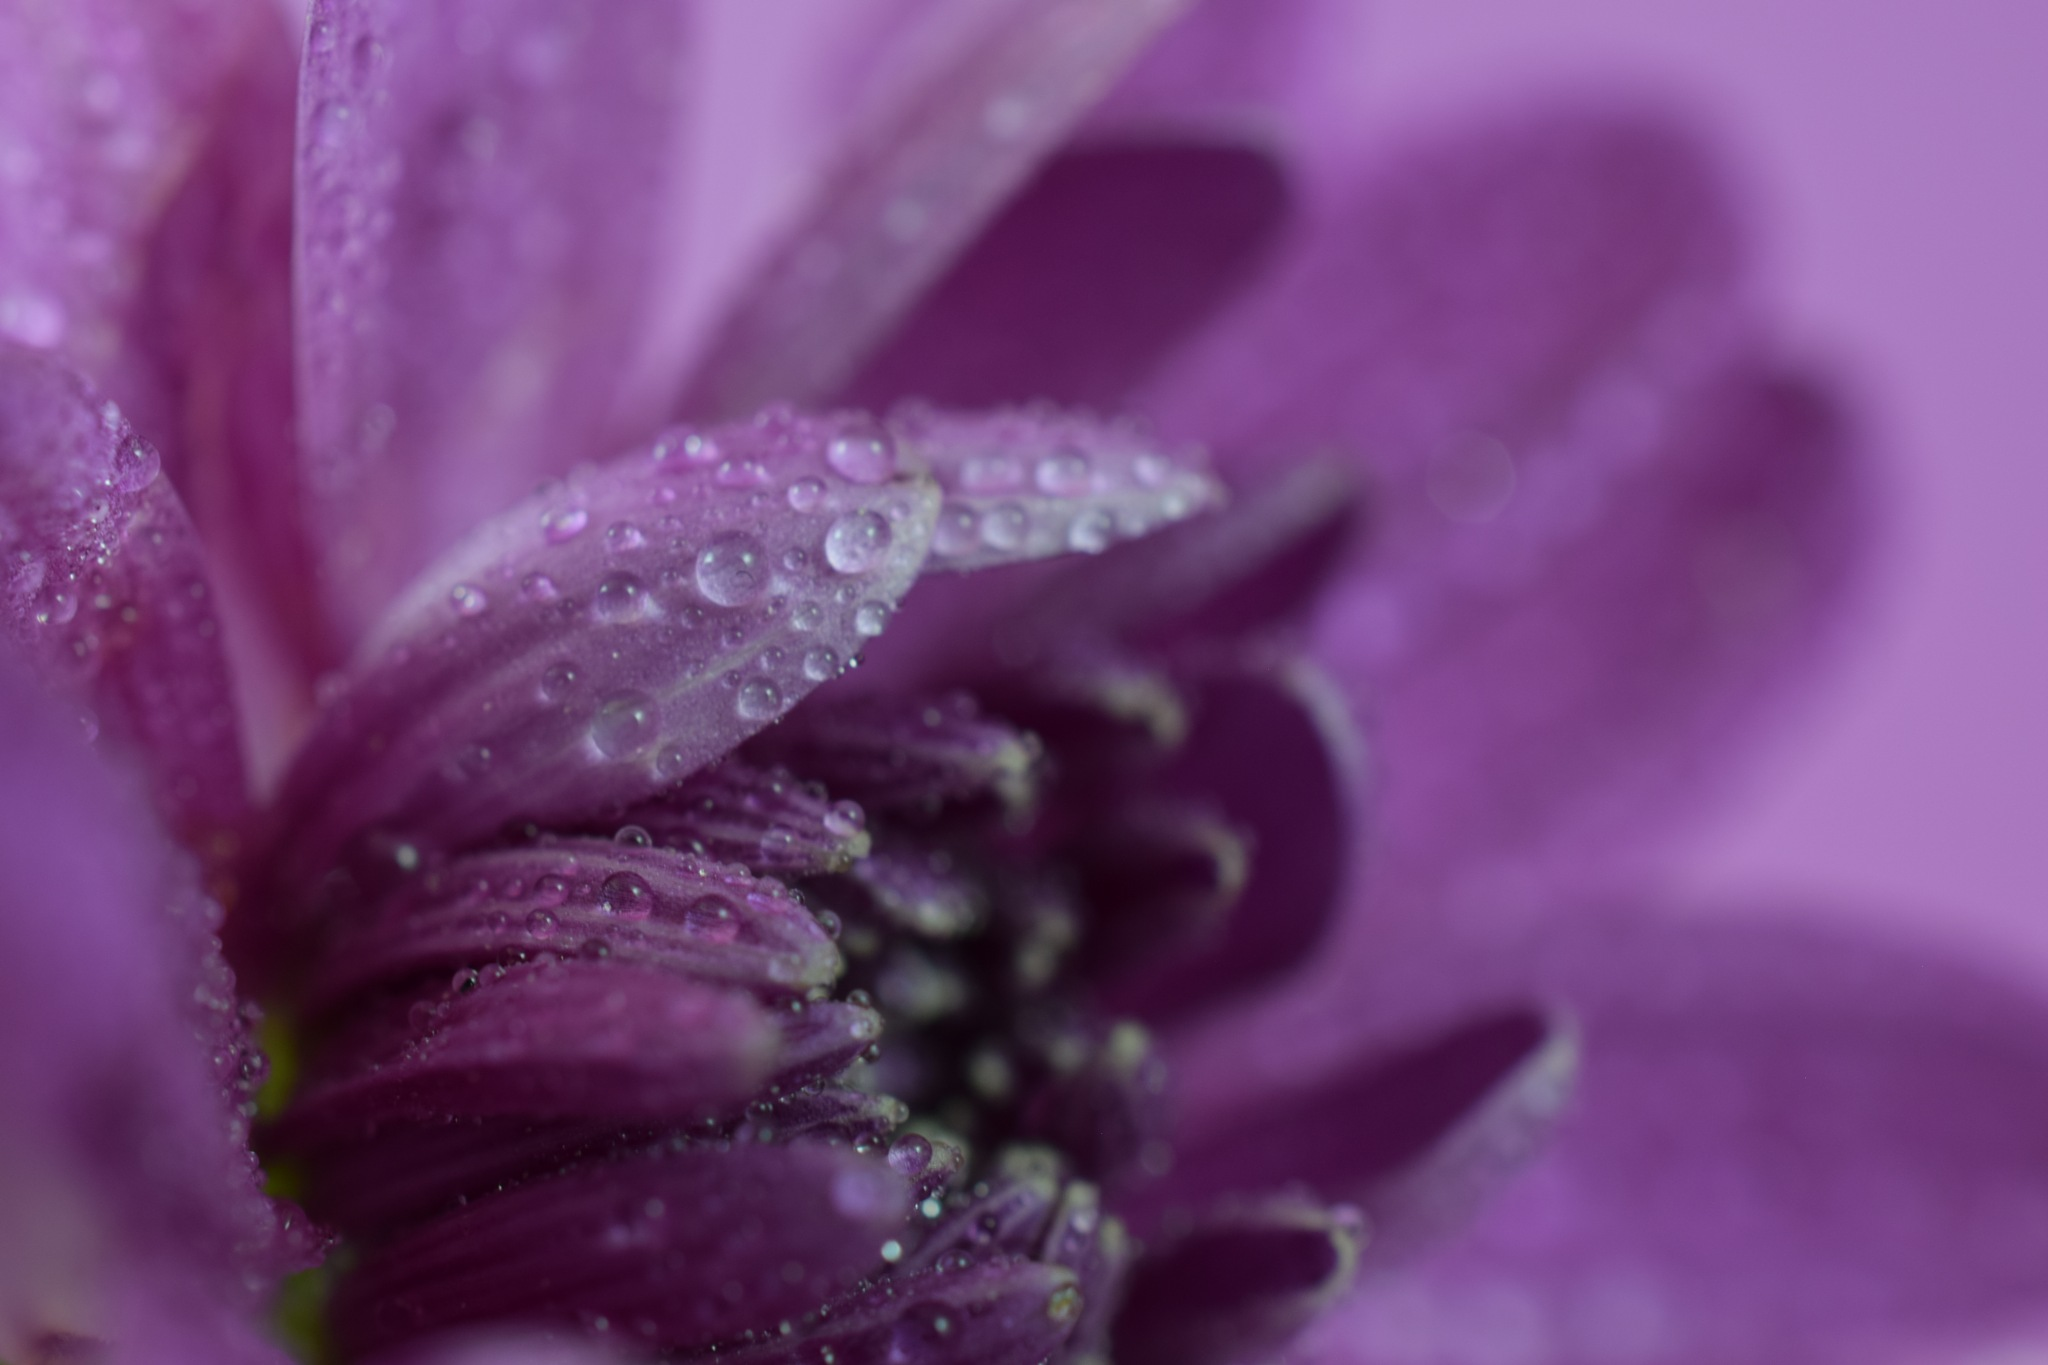 Chrysanthemum with droplets by Theresia Buskas